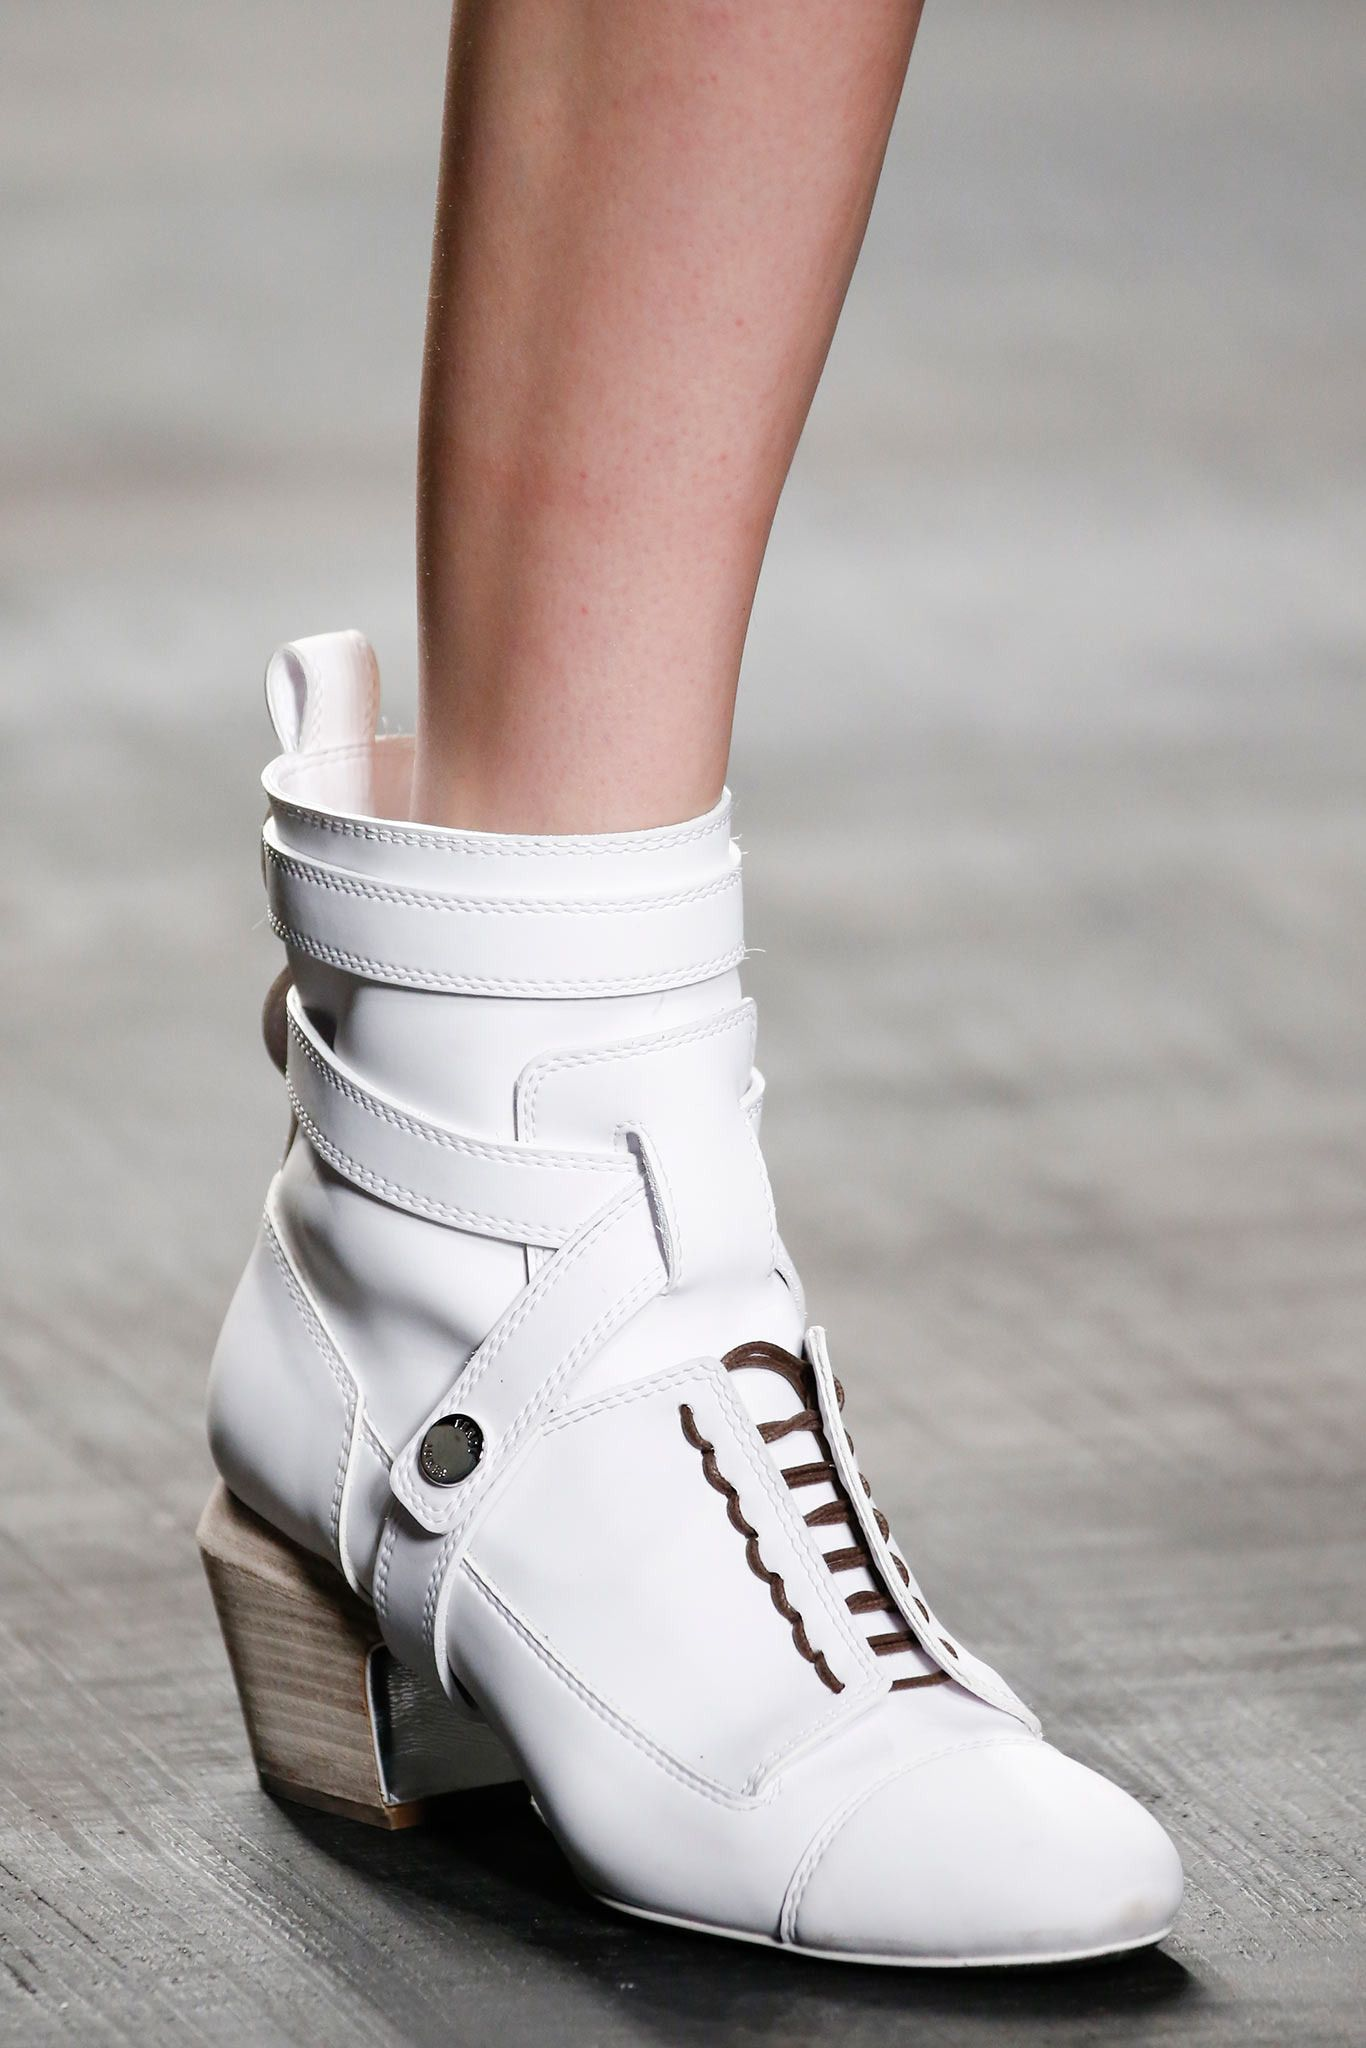 Shoes | Fendi gorgeous white leather ankle boots with laces